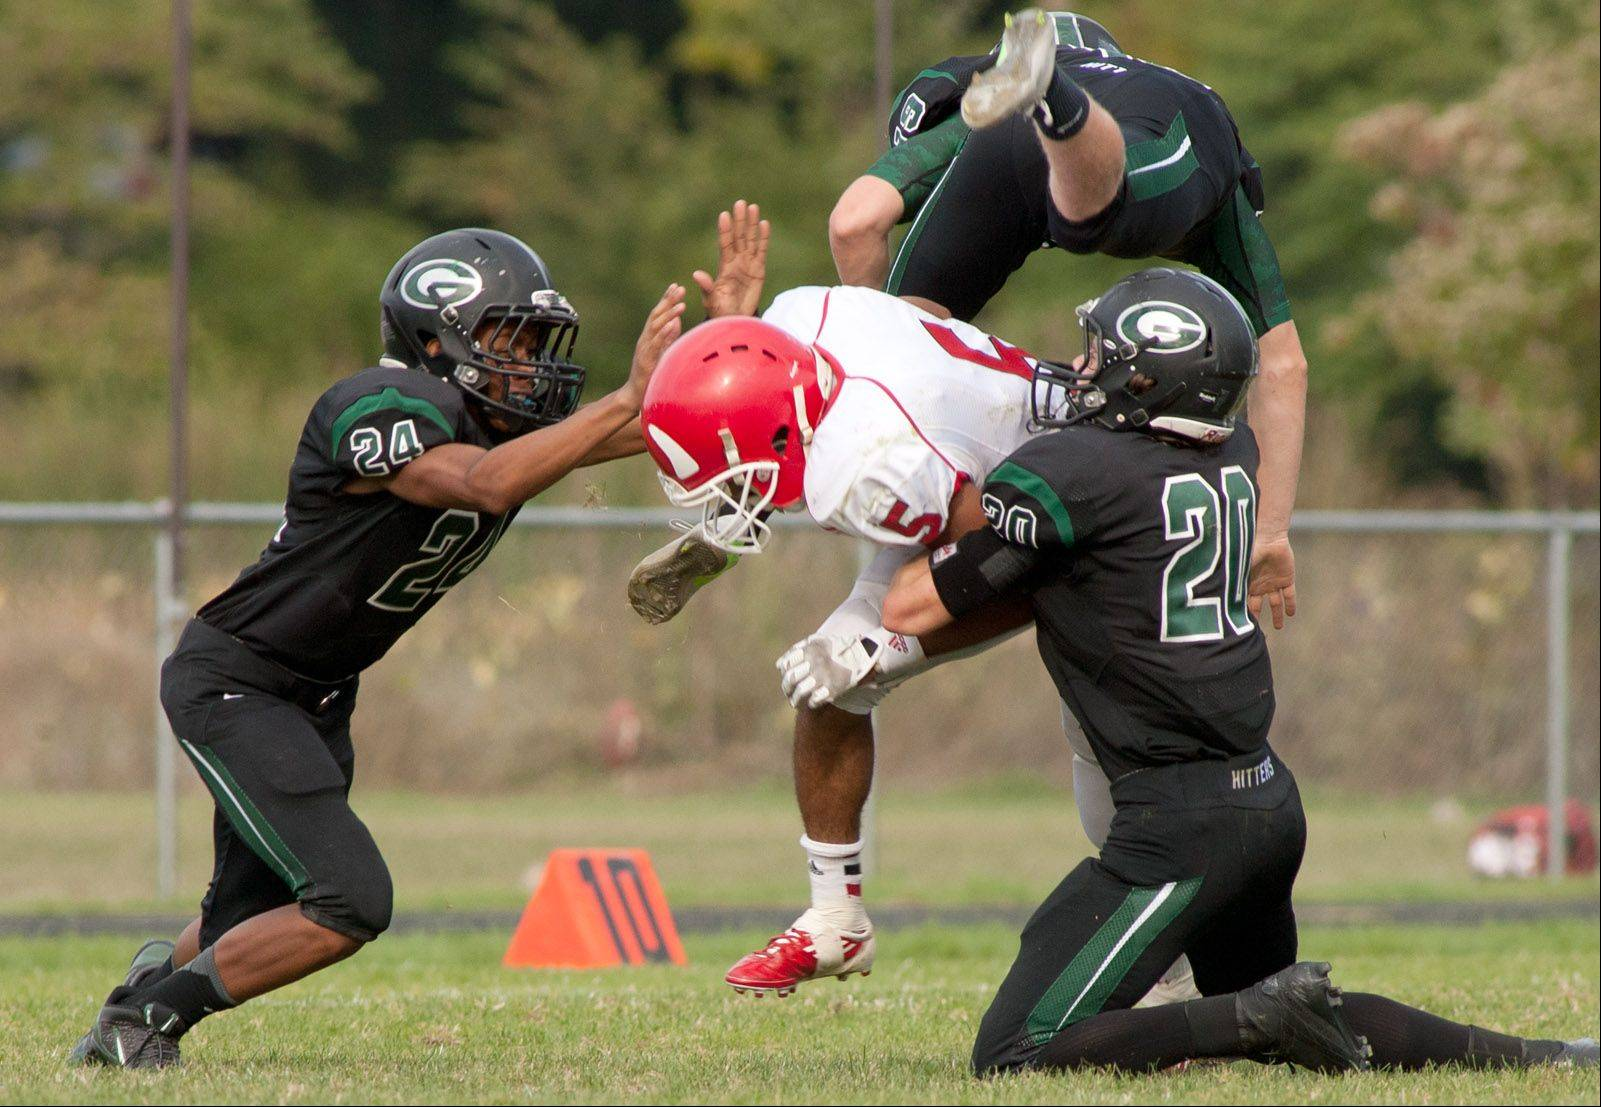 Hinsdale Central's Juwan Edmund, center, is tackled by Glenbard West's Ryan Thomas, left, and Jason Balogh.